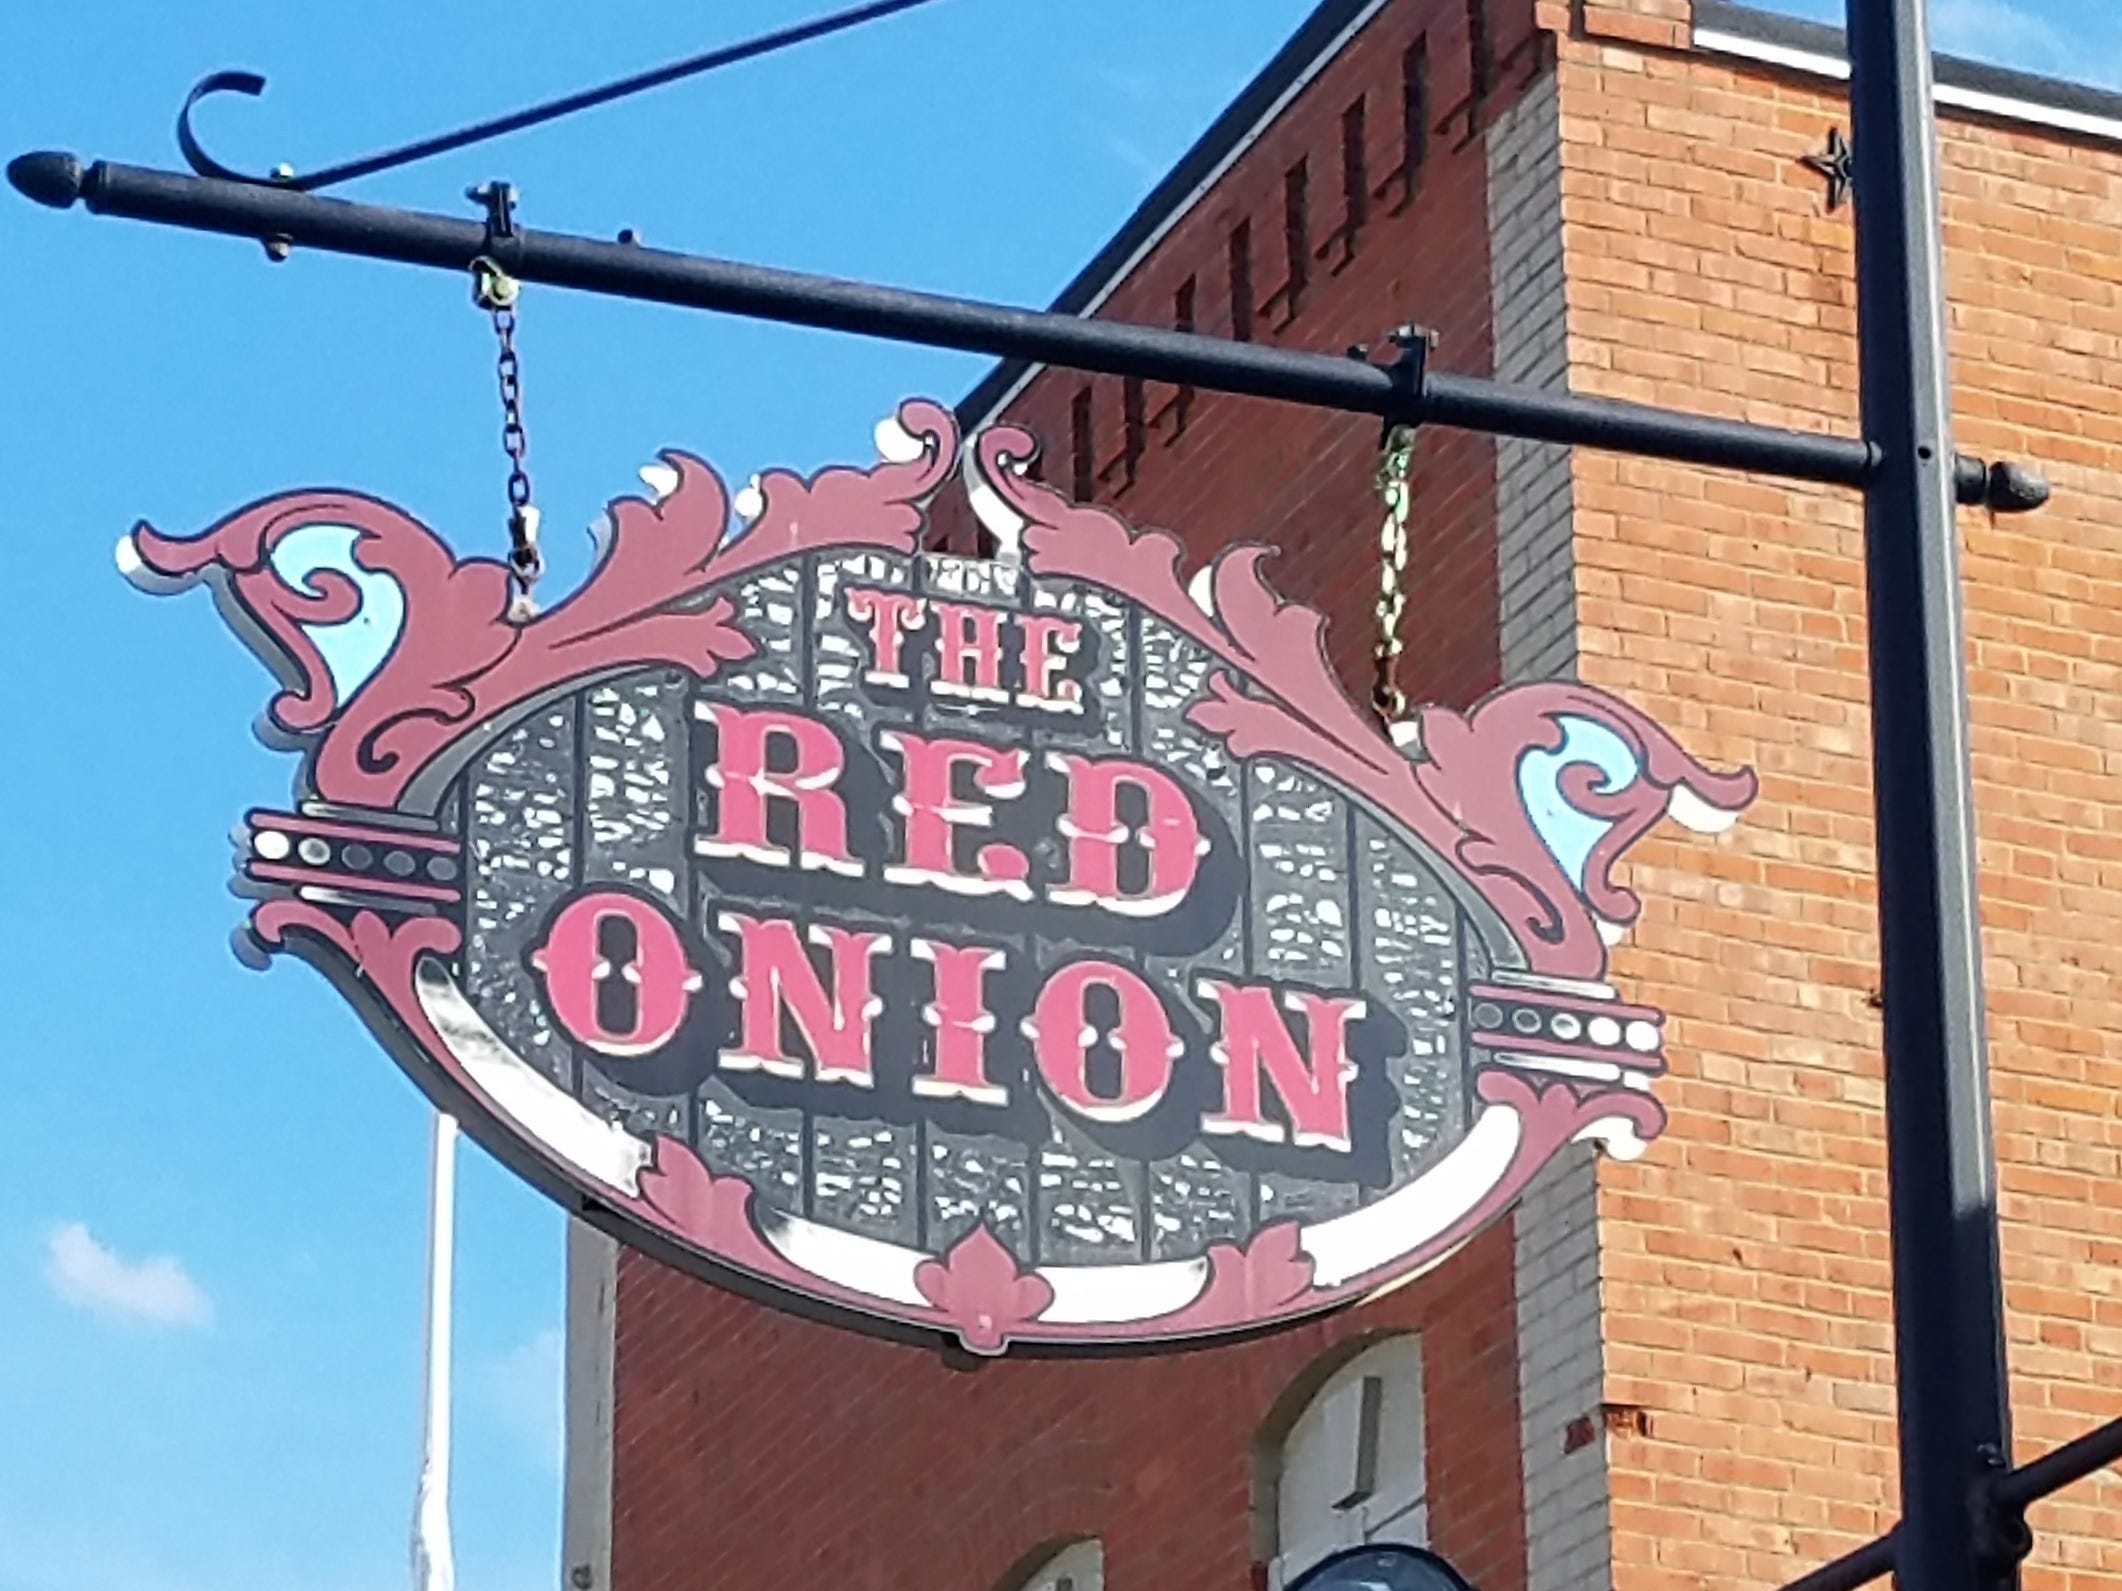 The Red Onion is a landmark in downtown Equality, Illinois.